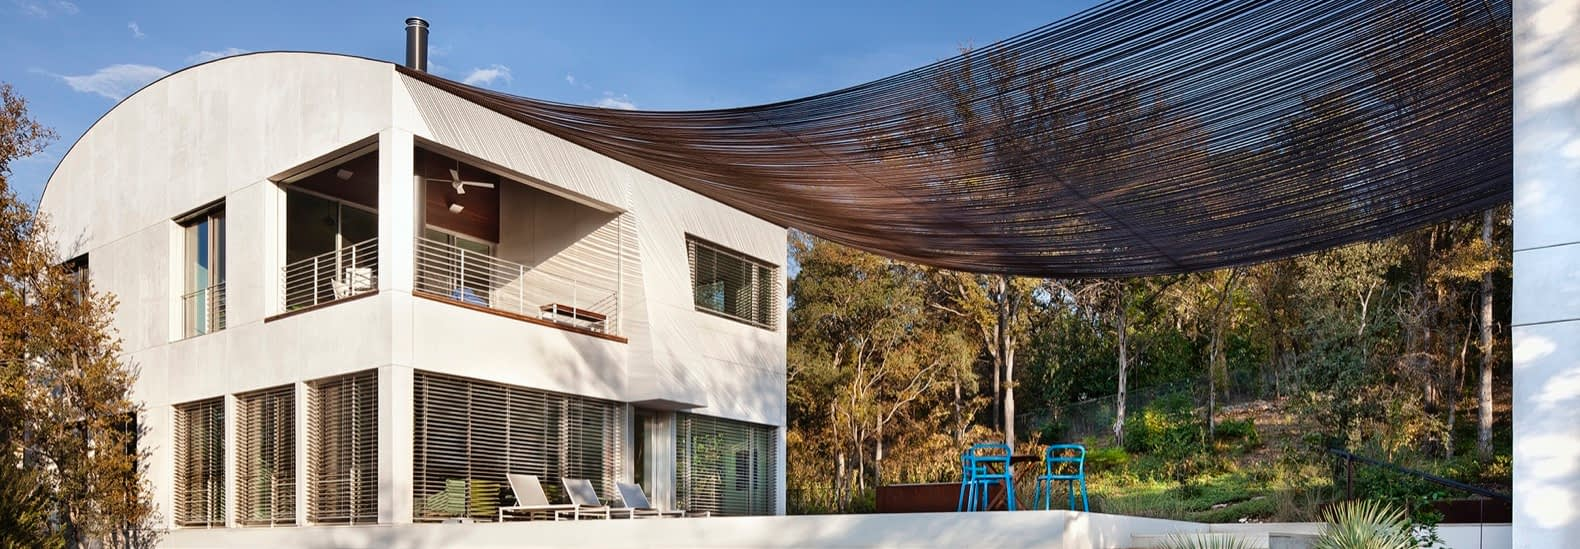 , Solar-powered home in Austin embraces sustainability in more ways than one, TheCircularEconomy.com